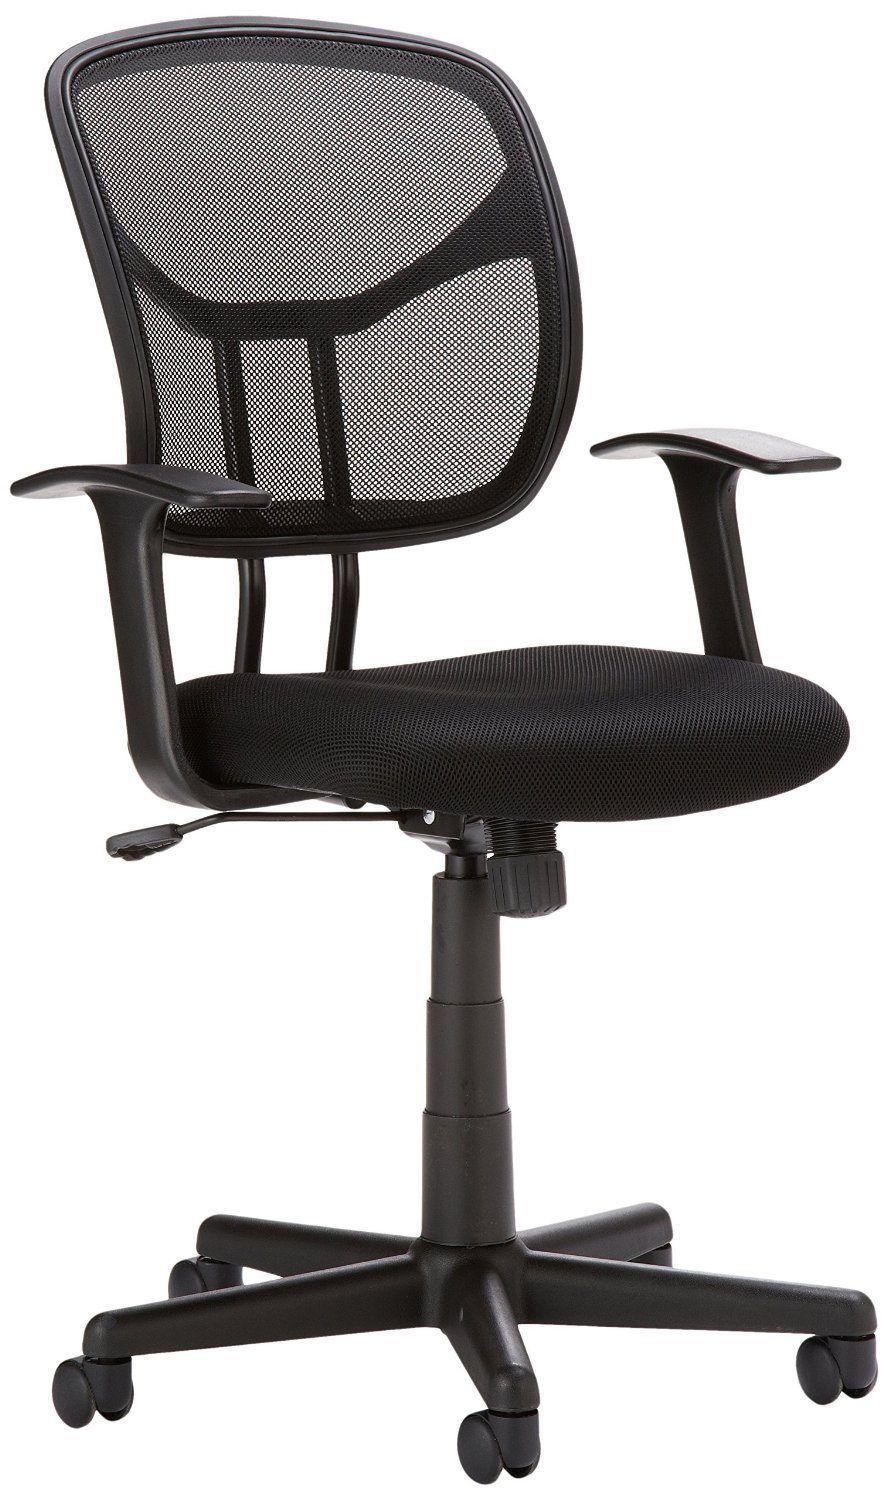 Good Office Chairs Review Desk Decorating Ideas On A Budget Check More At Http Www Sewcraftyjenn